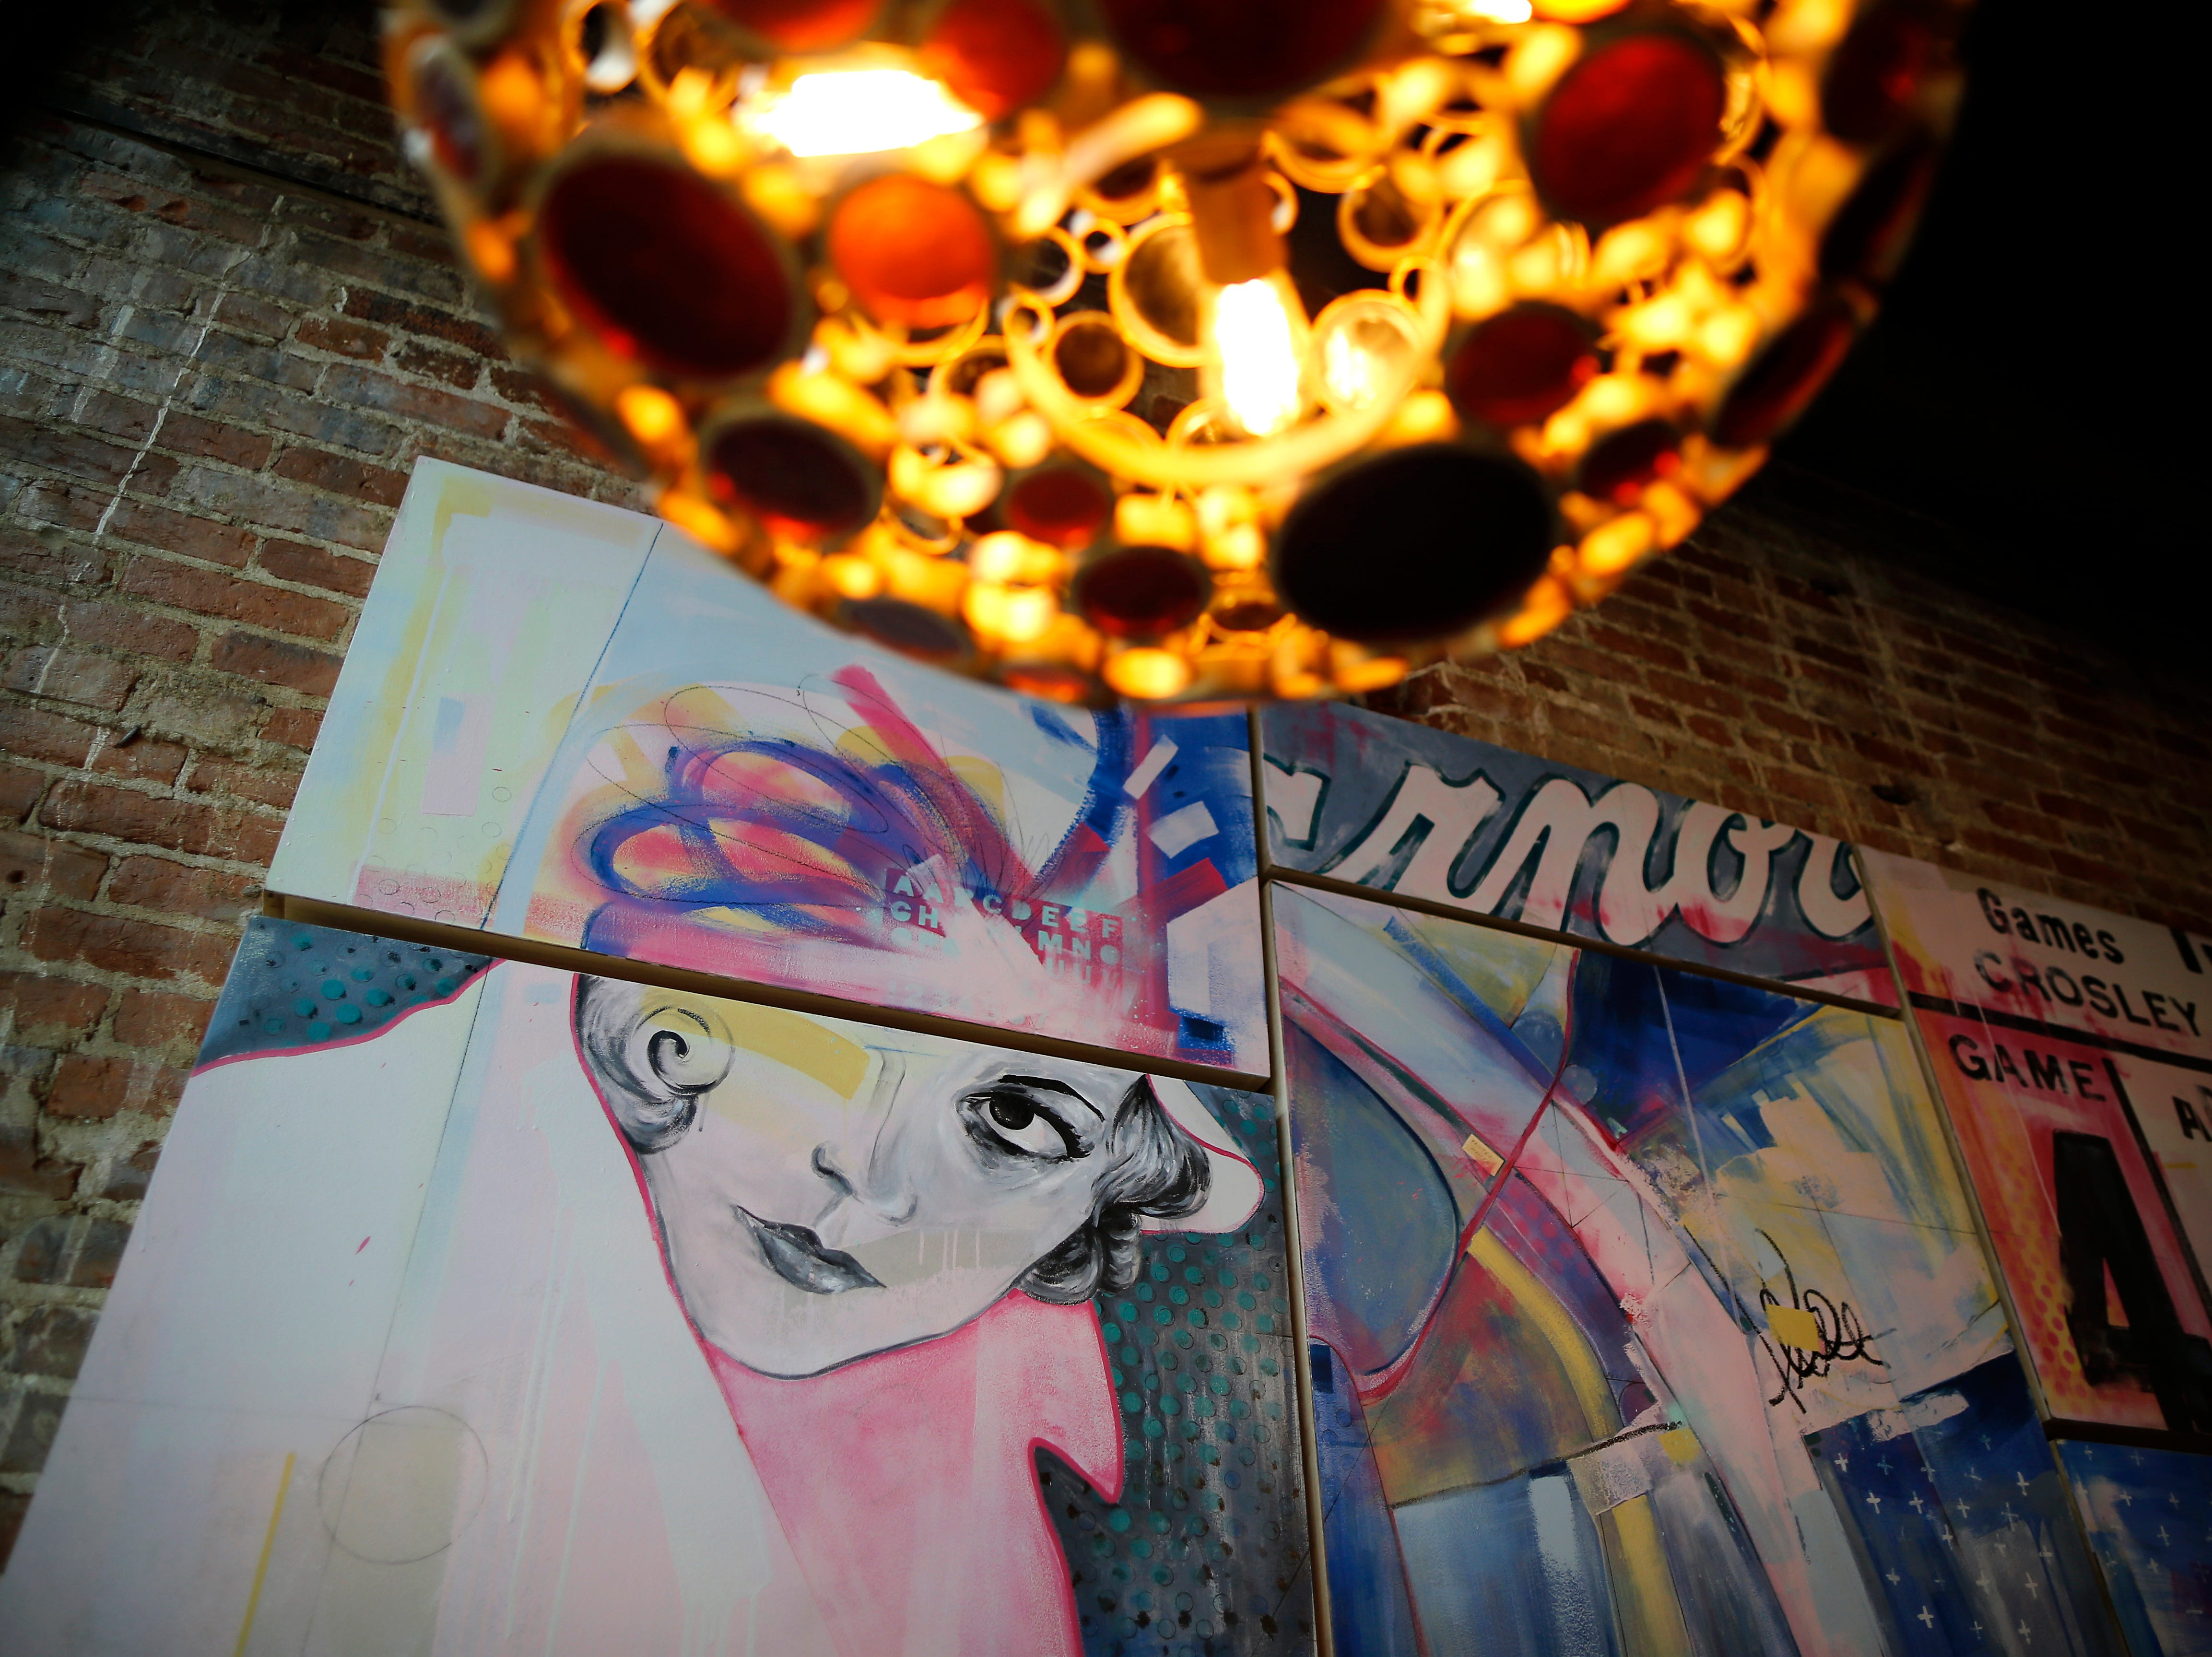 Wall art decorates the dining room at Louvino in the Over-the-Rhine neighborhood of Cincinnati on Thursday, Oct. 4, 2018.